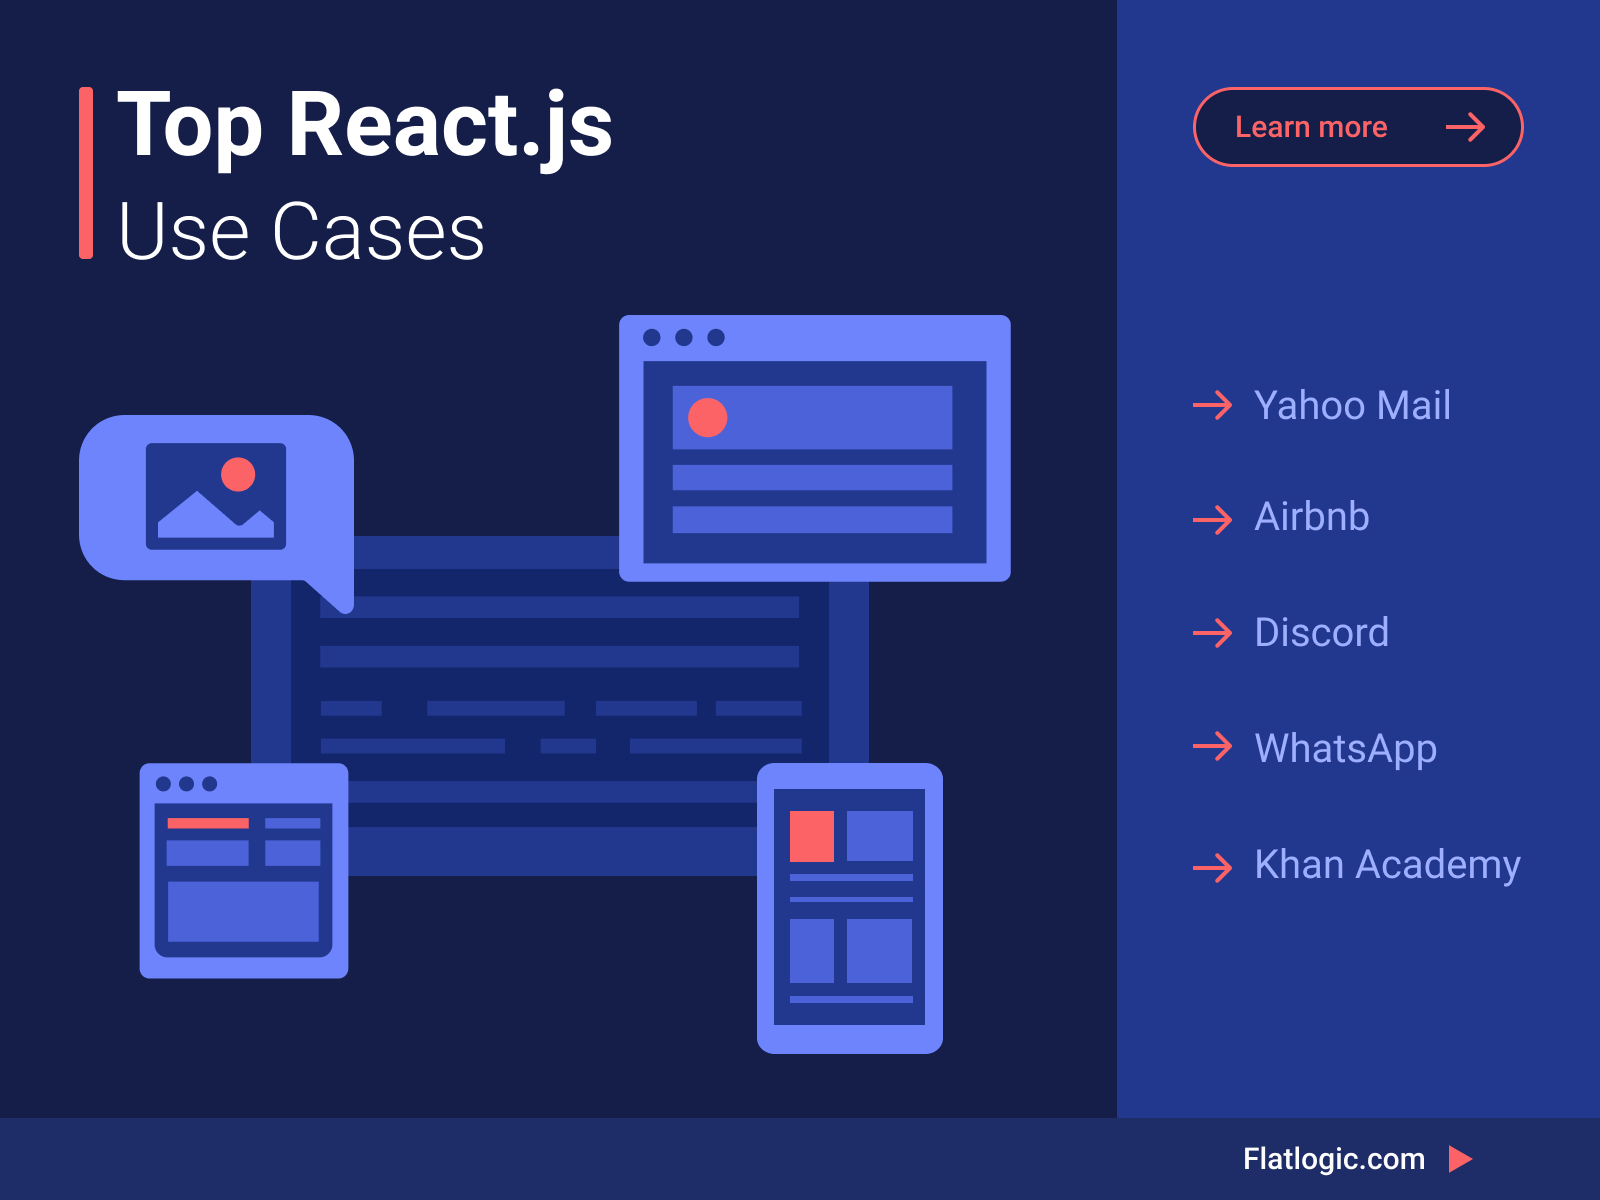 Top React Use Cases to Know